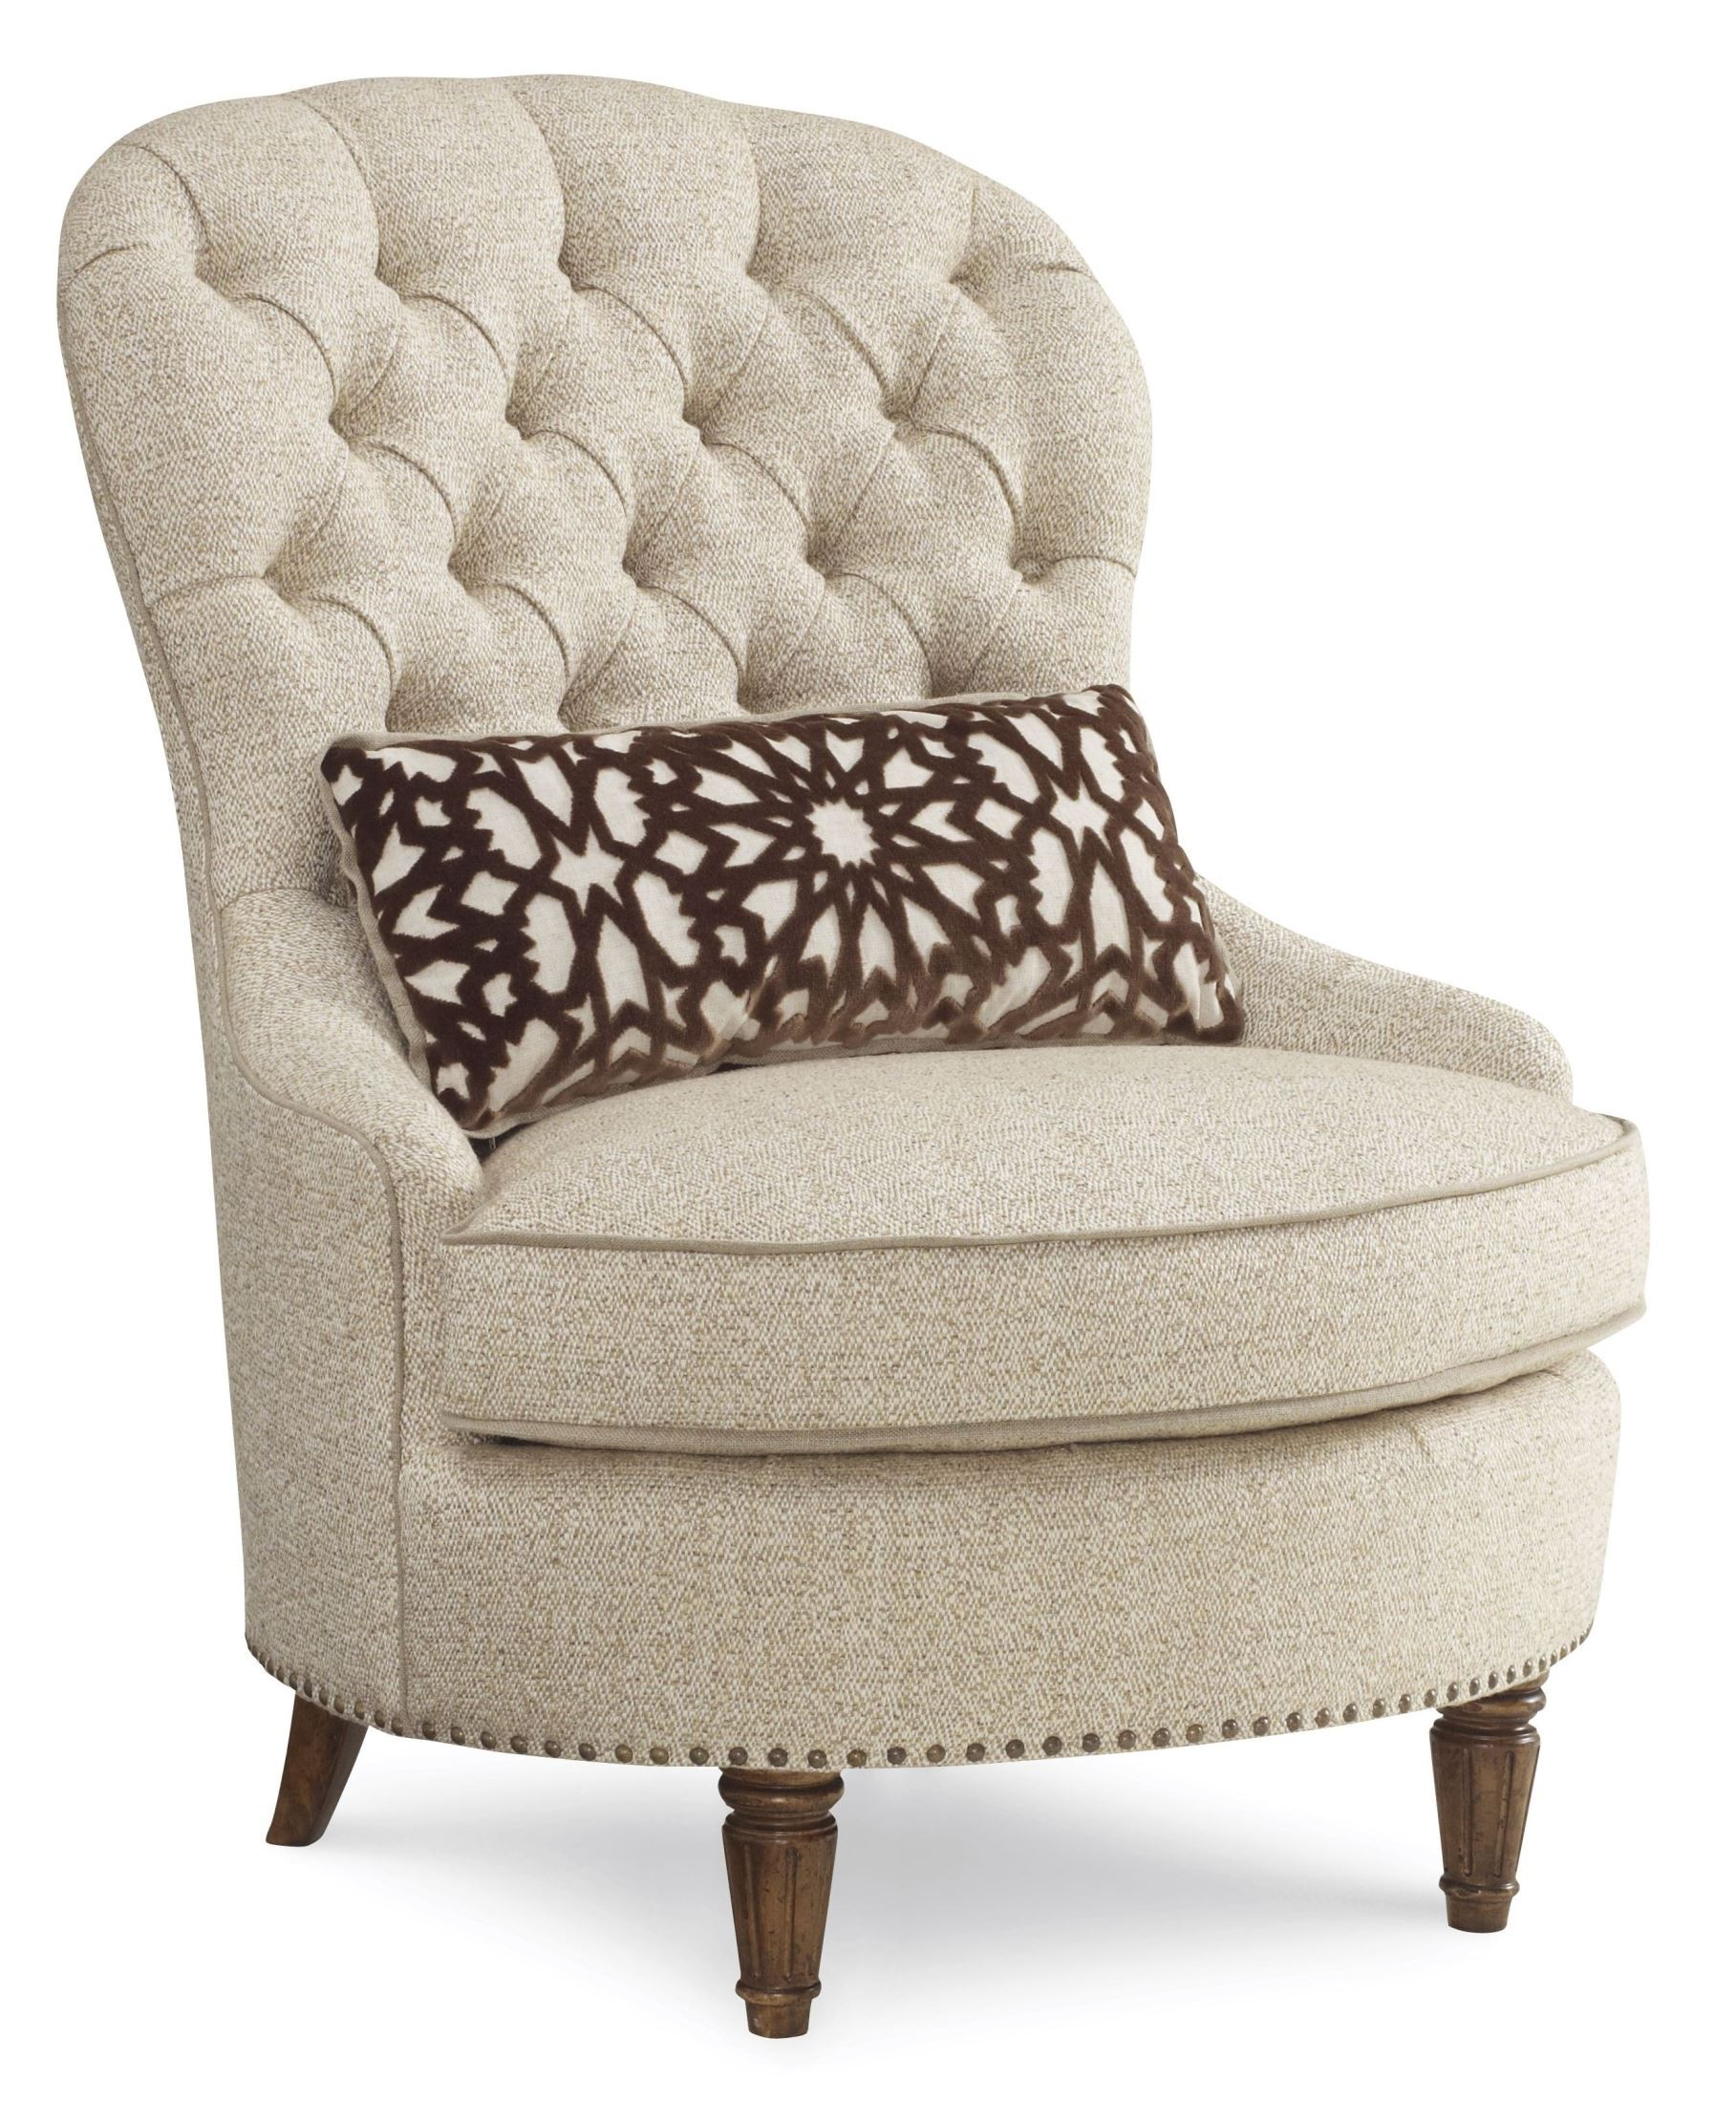 White Tufted Accent Chair Collection One Upholstered Tufted Accent Chair From Art